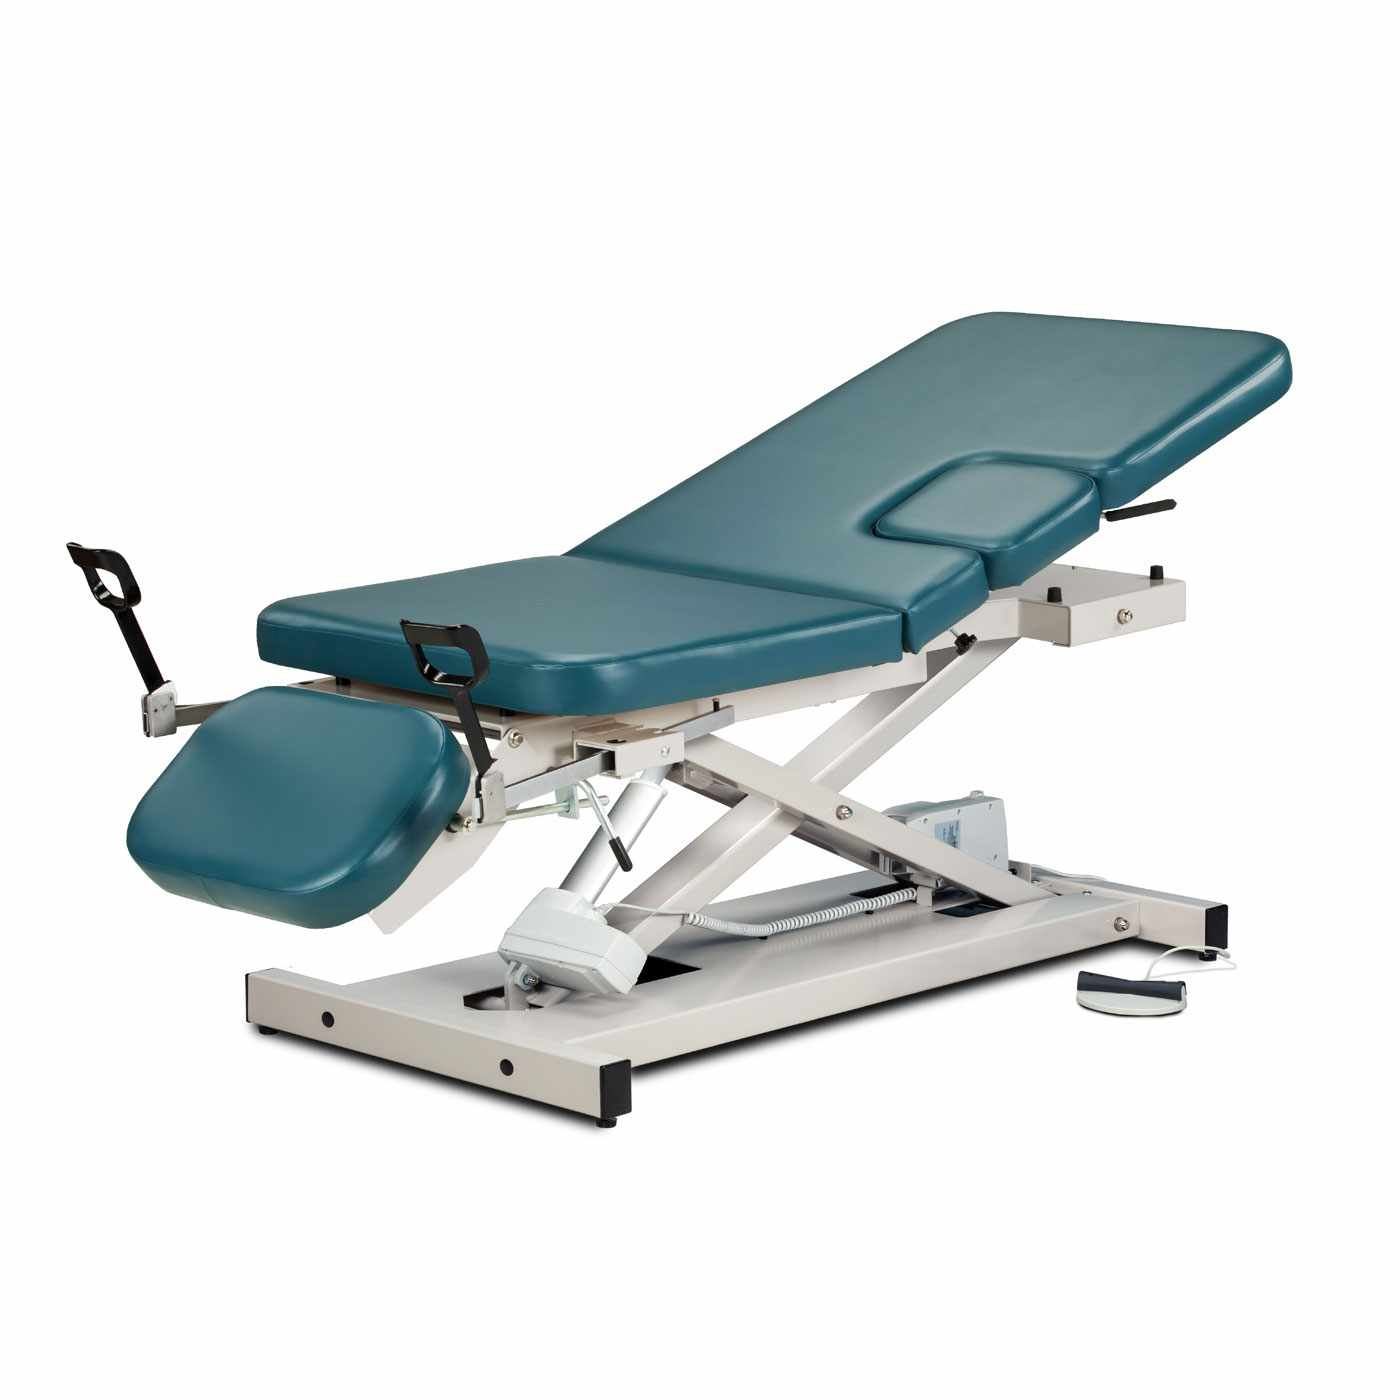 Clinton open base, multi-use power imaging table with stirrups